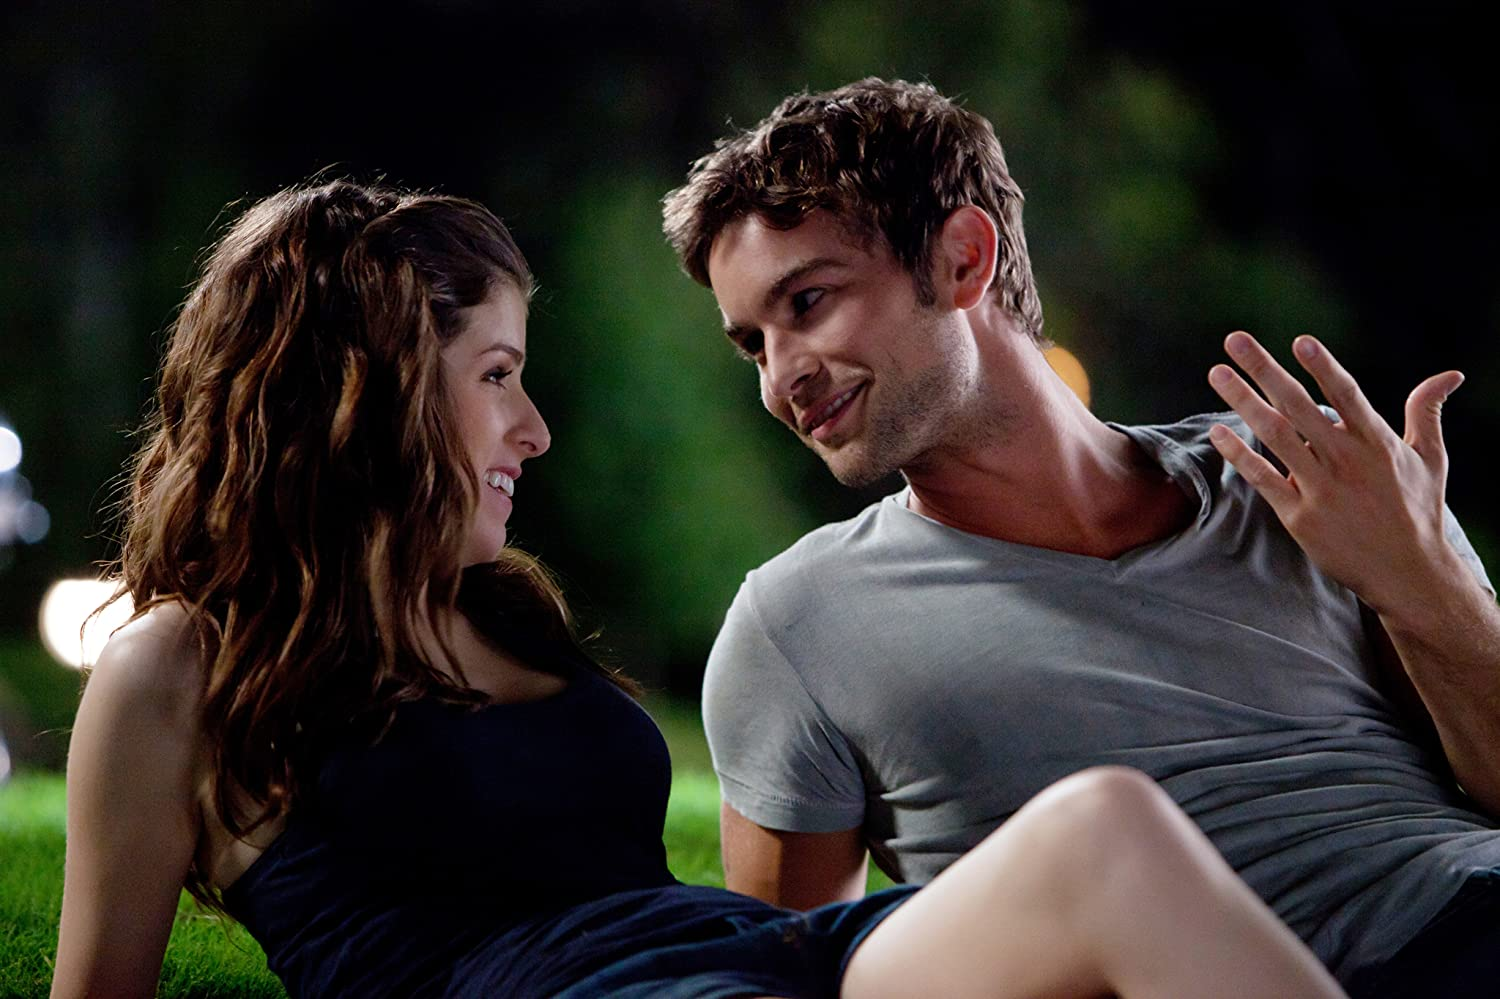 Anna Kendrick and Chace Crawford in What to Expect When You're Expecting (2012)